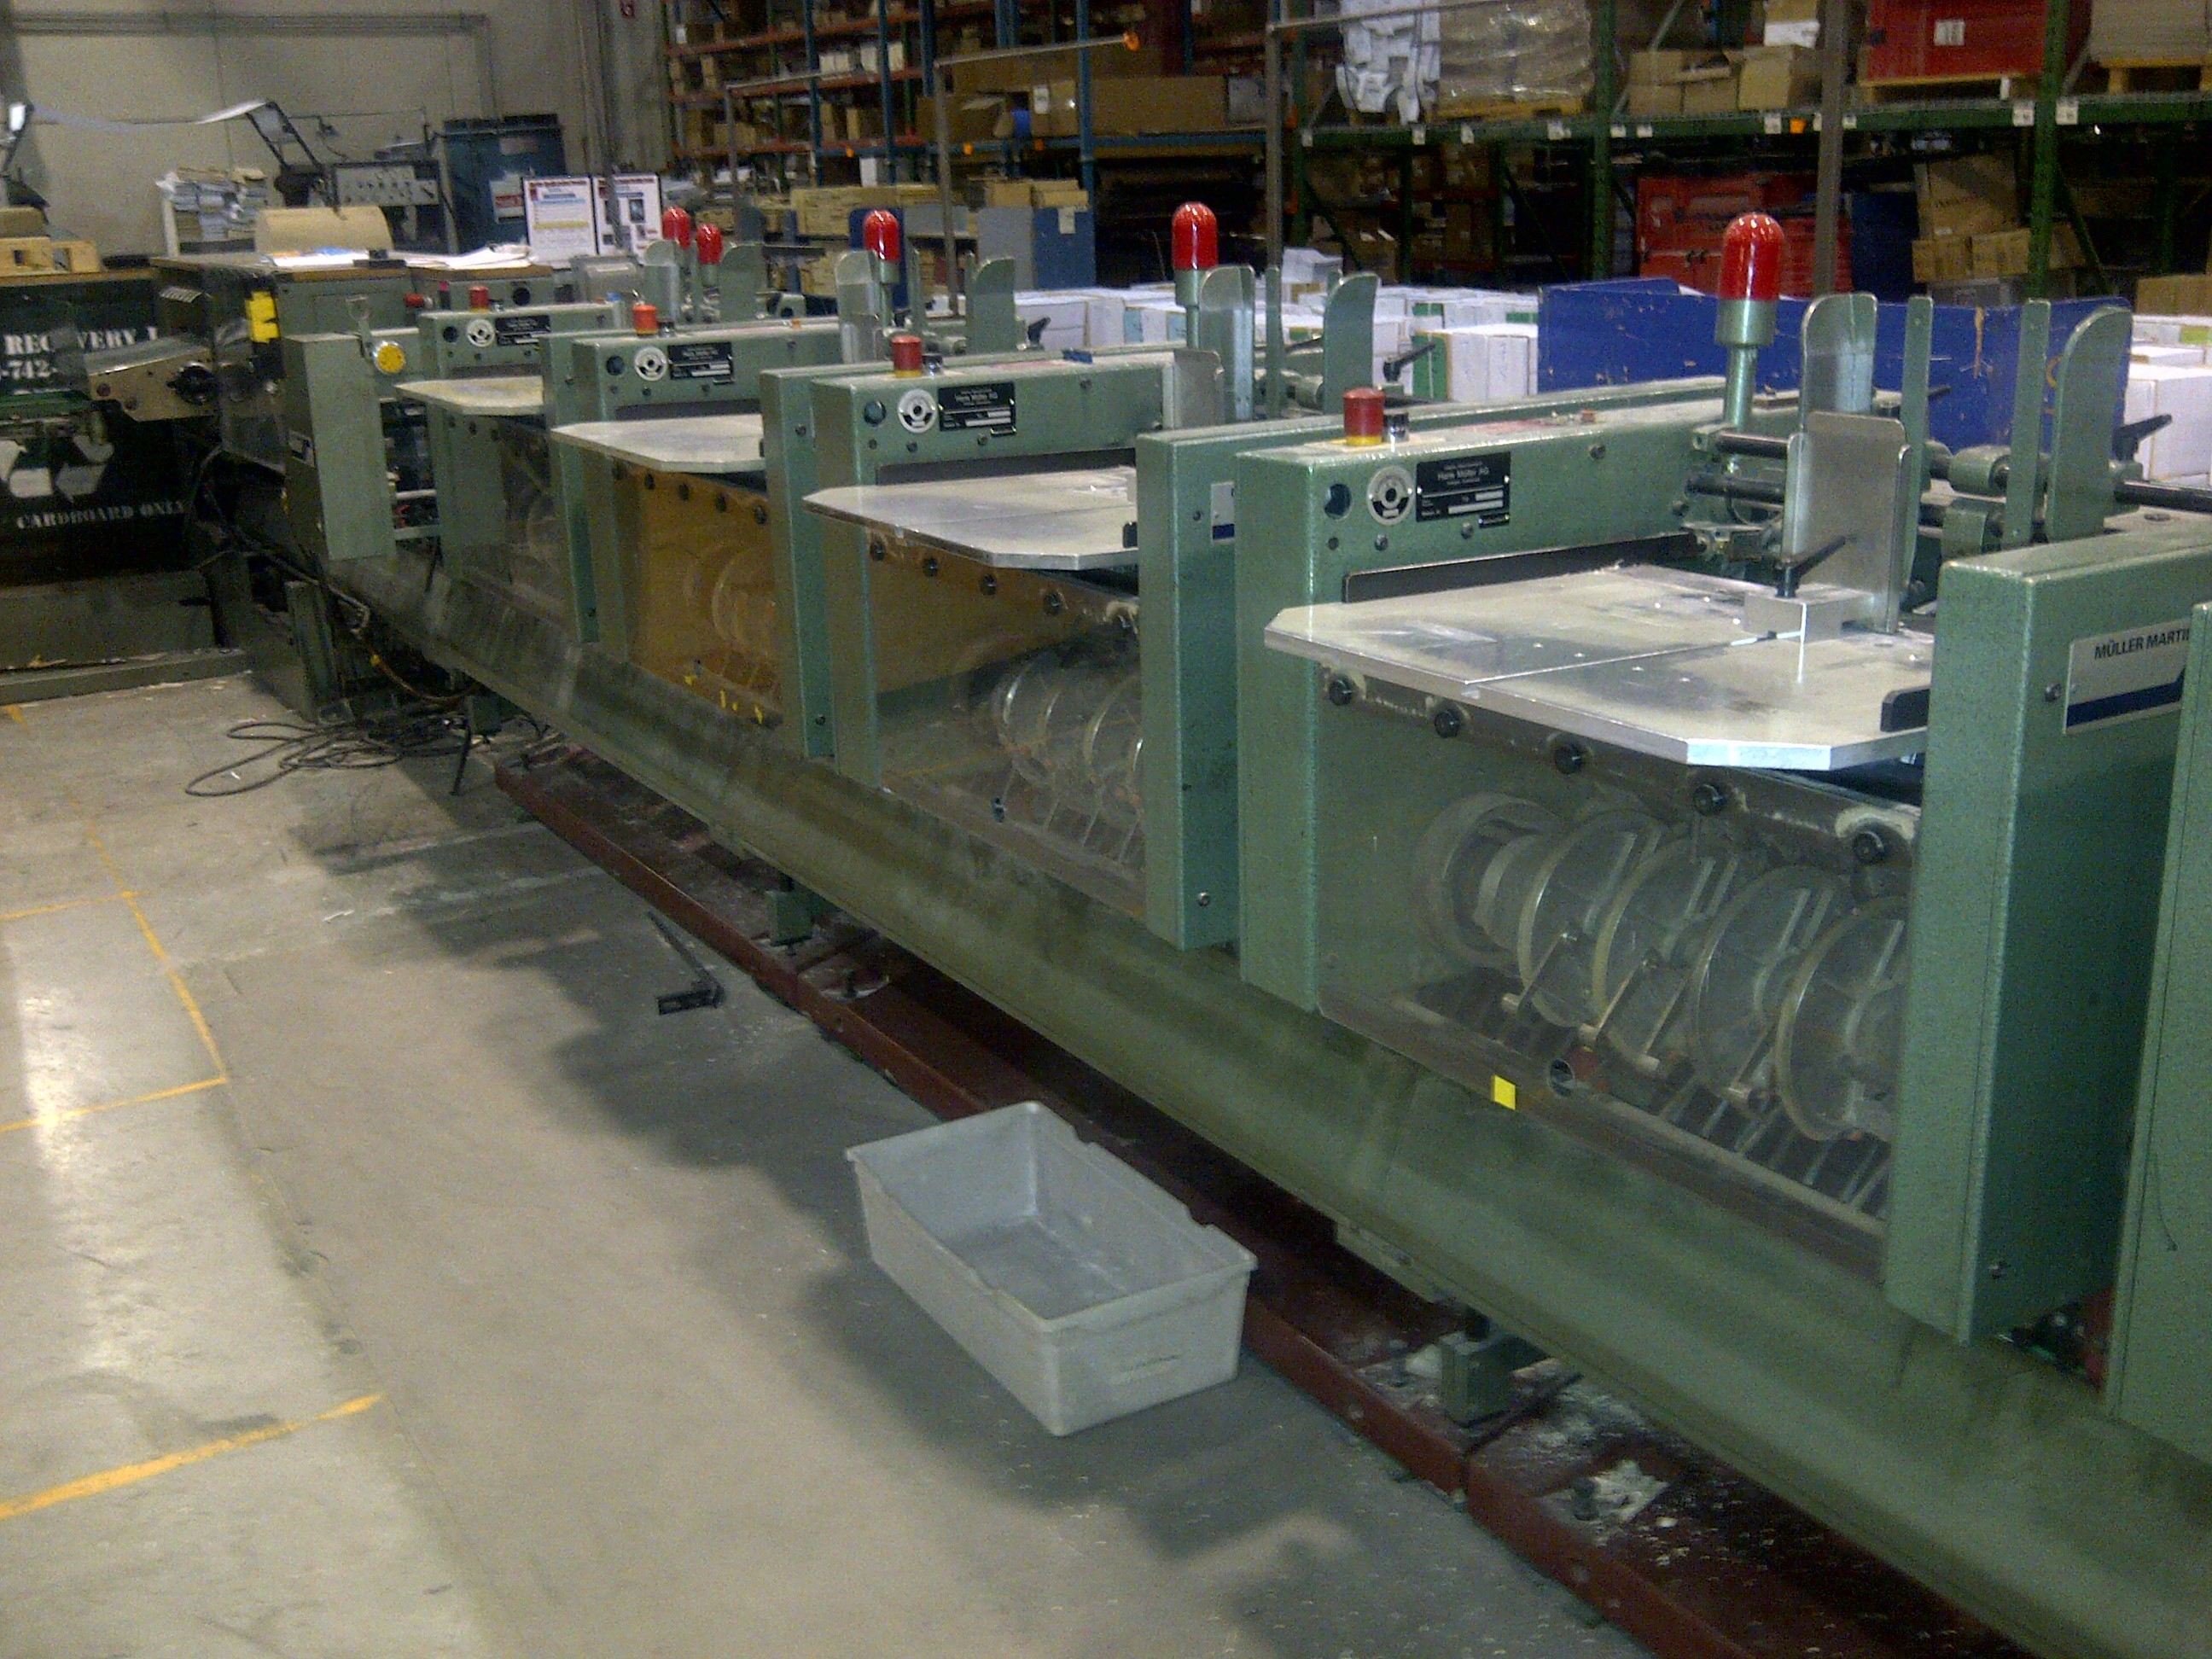 1993 MUELLER MARTINI 321, 7 POCKET- 335 MODEL WITH COVER FEEDER, SADDLE STITCHER, TRIMMER, & CONVEYOR, STACKER 17